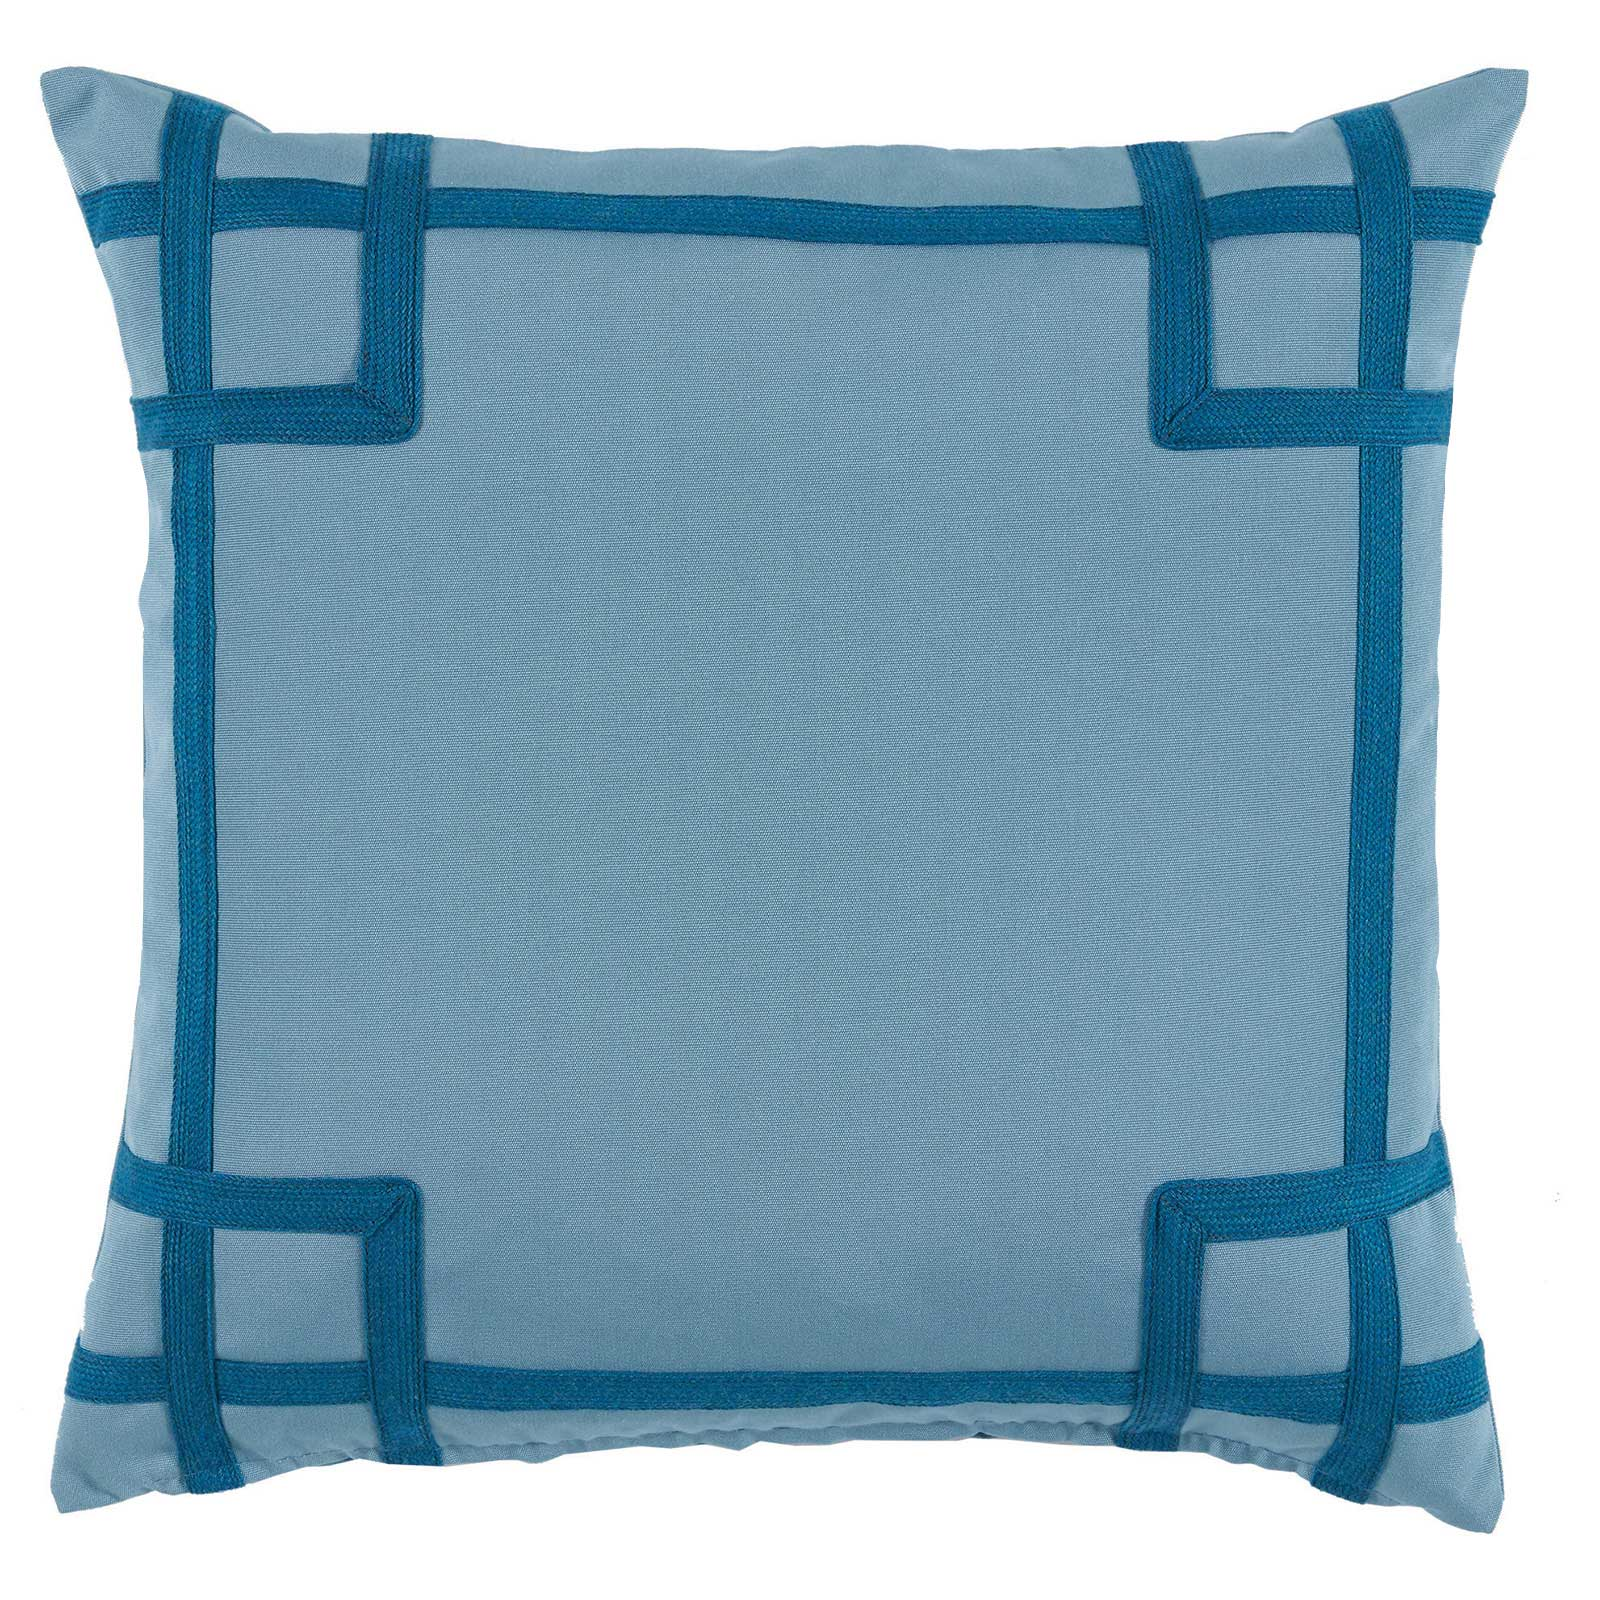 Paton Classic Outdoor Sky Trellis Trim Pillow - 20x20